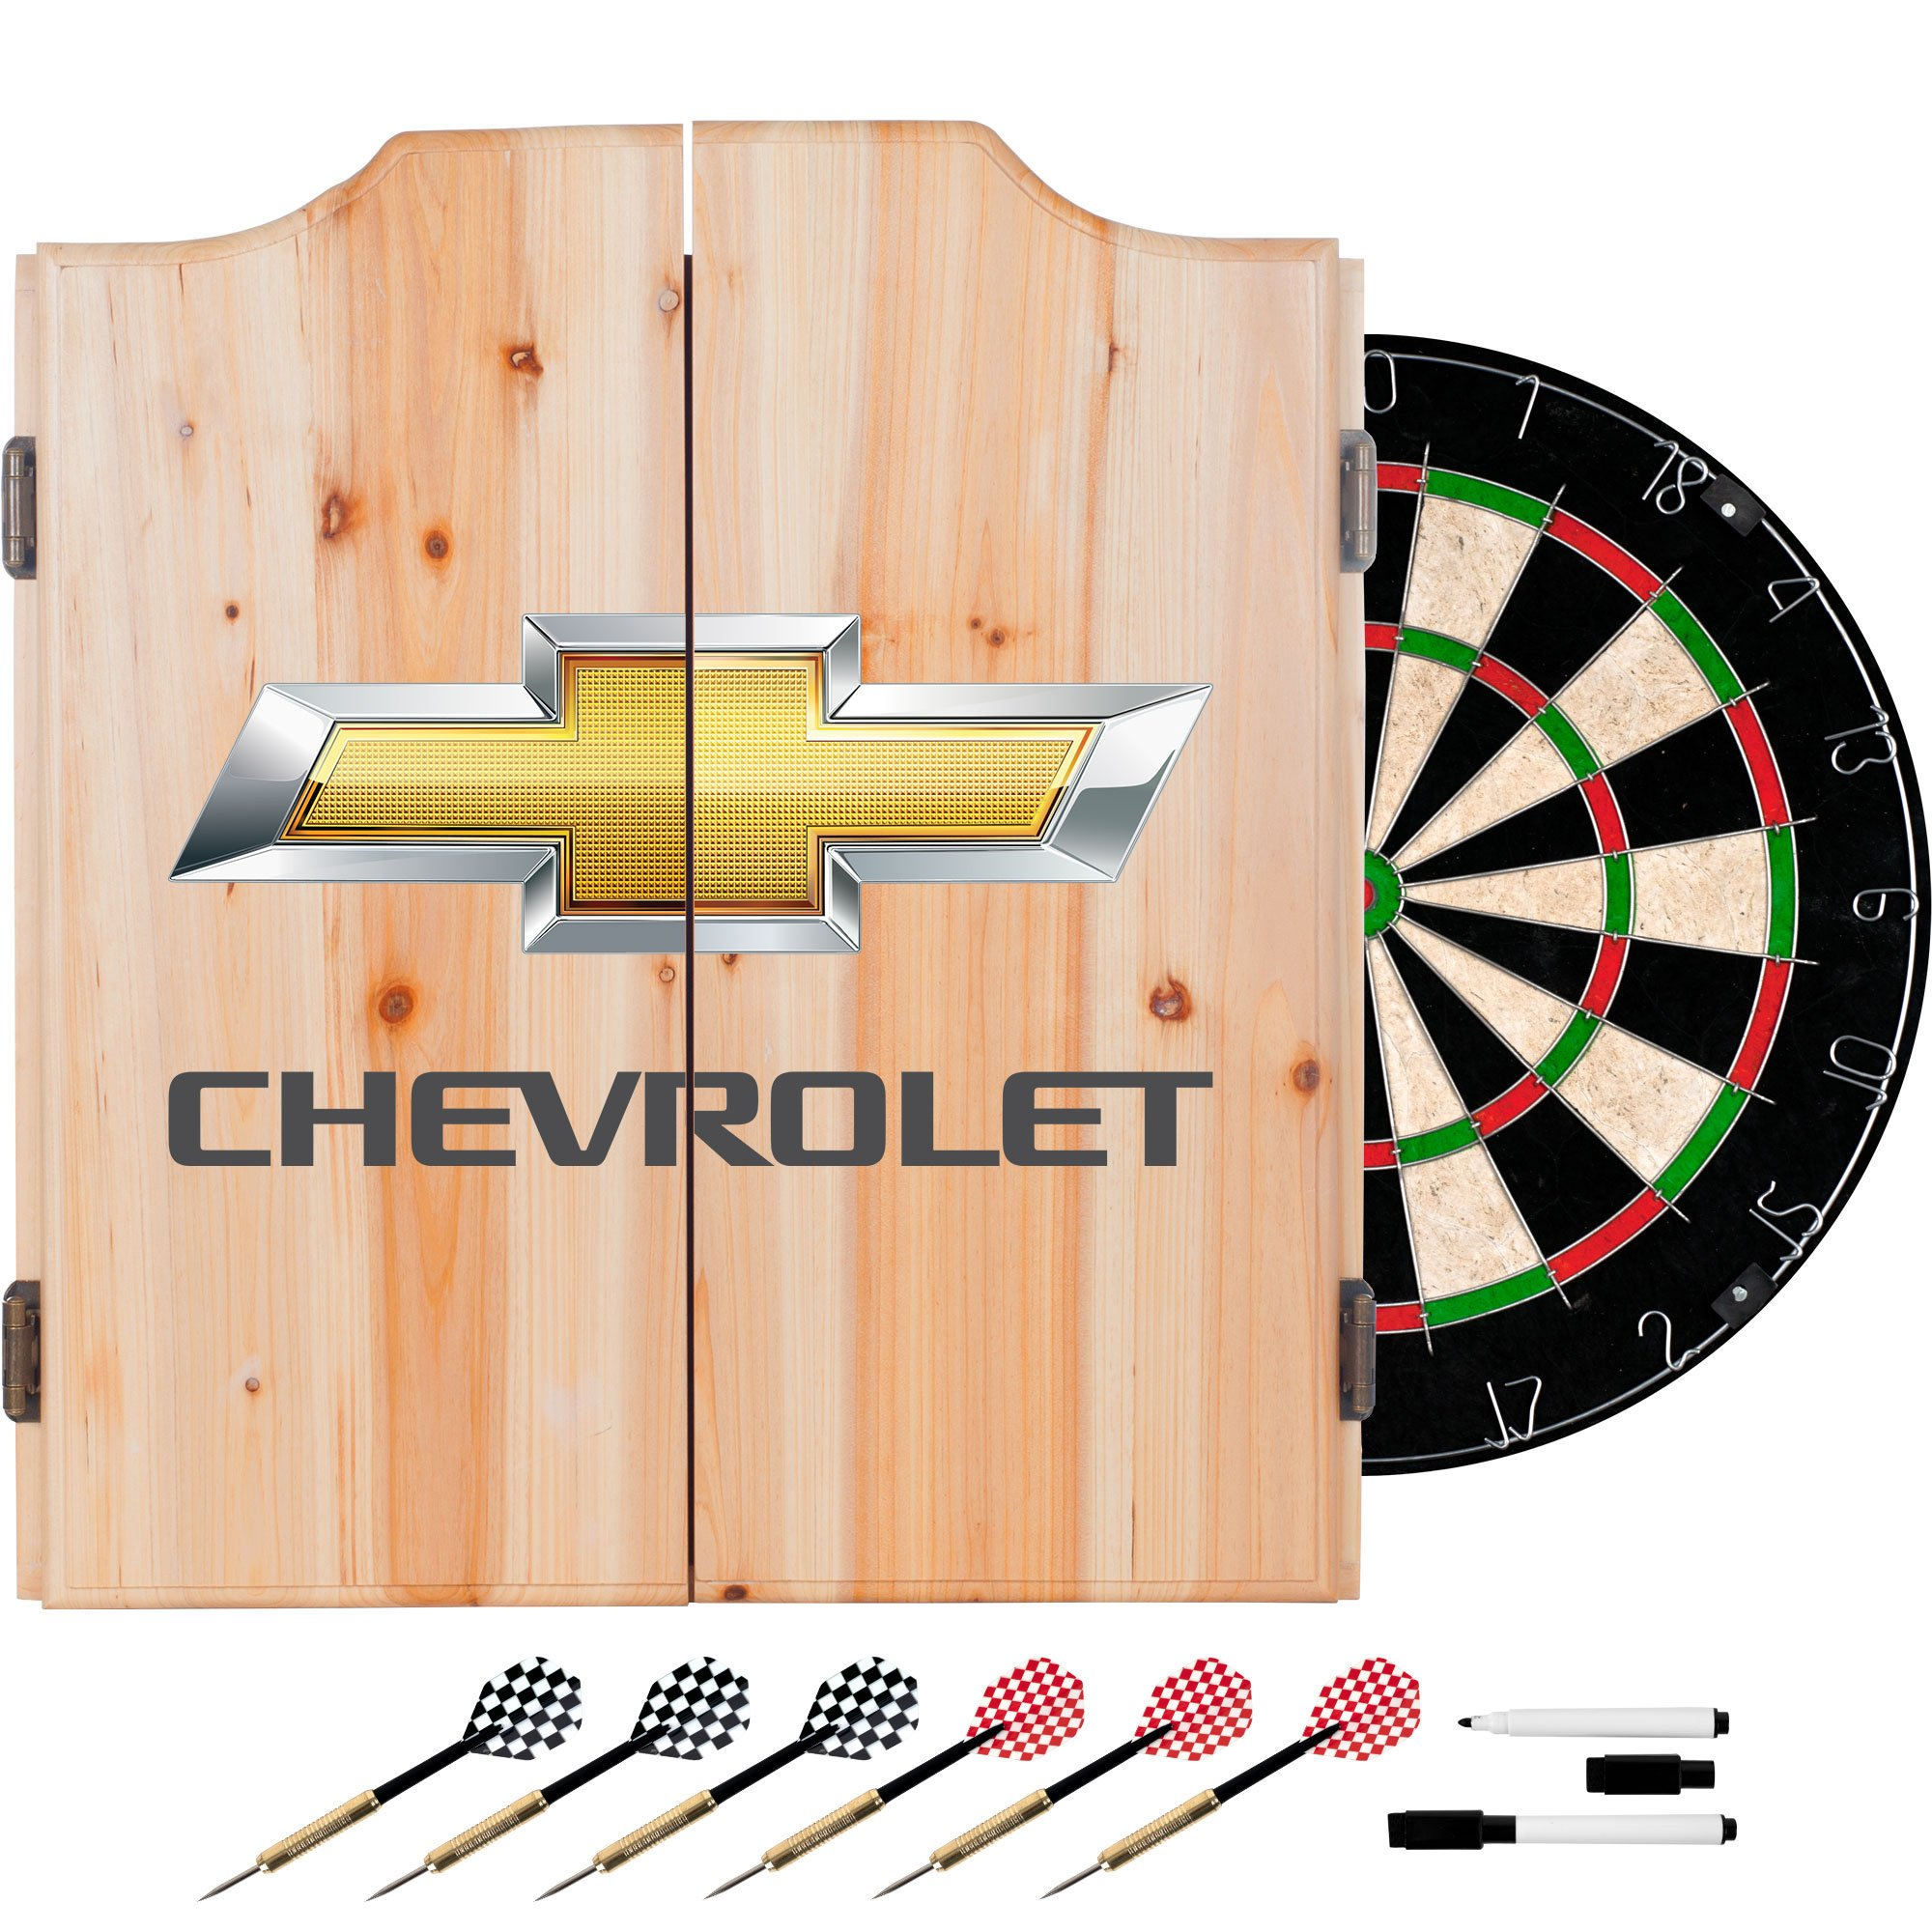 Trademark Gameroom Chevrolet Dart Board Set with Cabinet